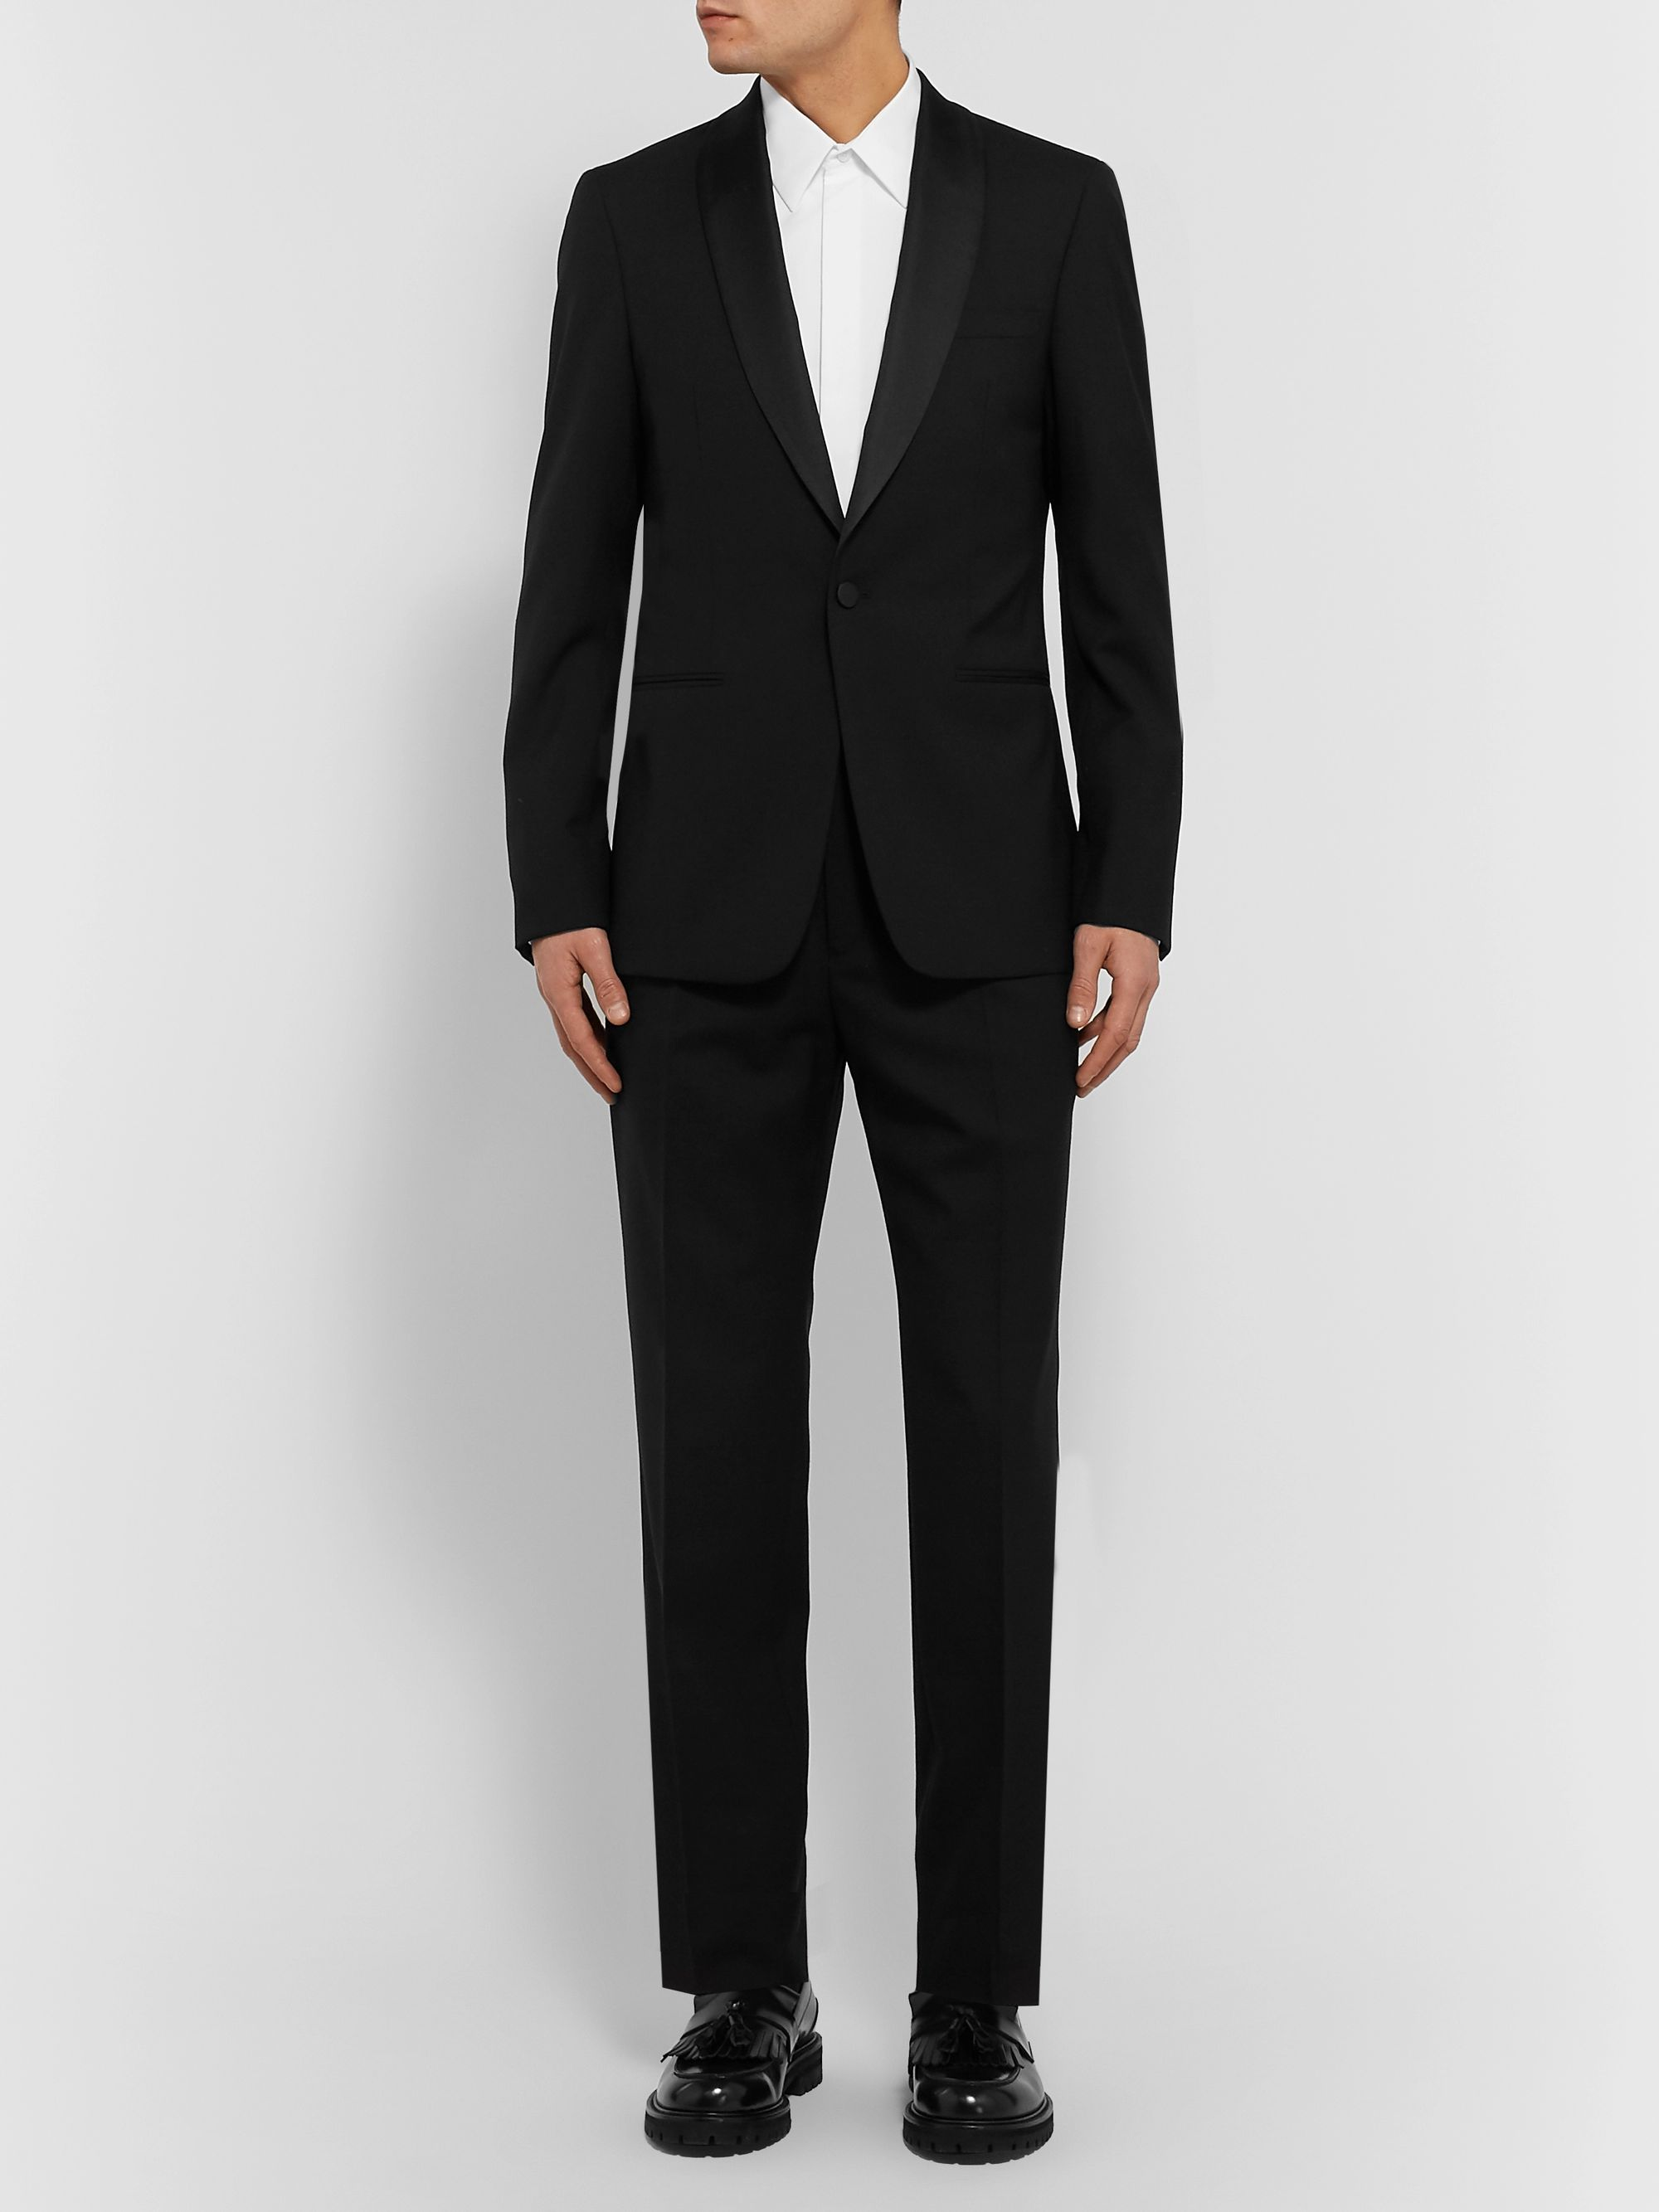 Mr P. Black Slim-Fit Grosgrain-Trimmed Wool Drawstring Tuxedo Trousers